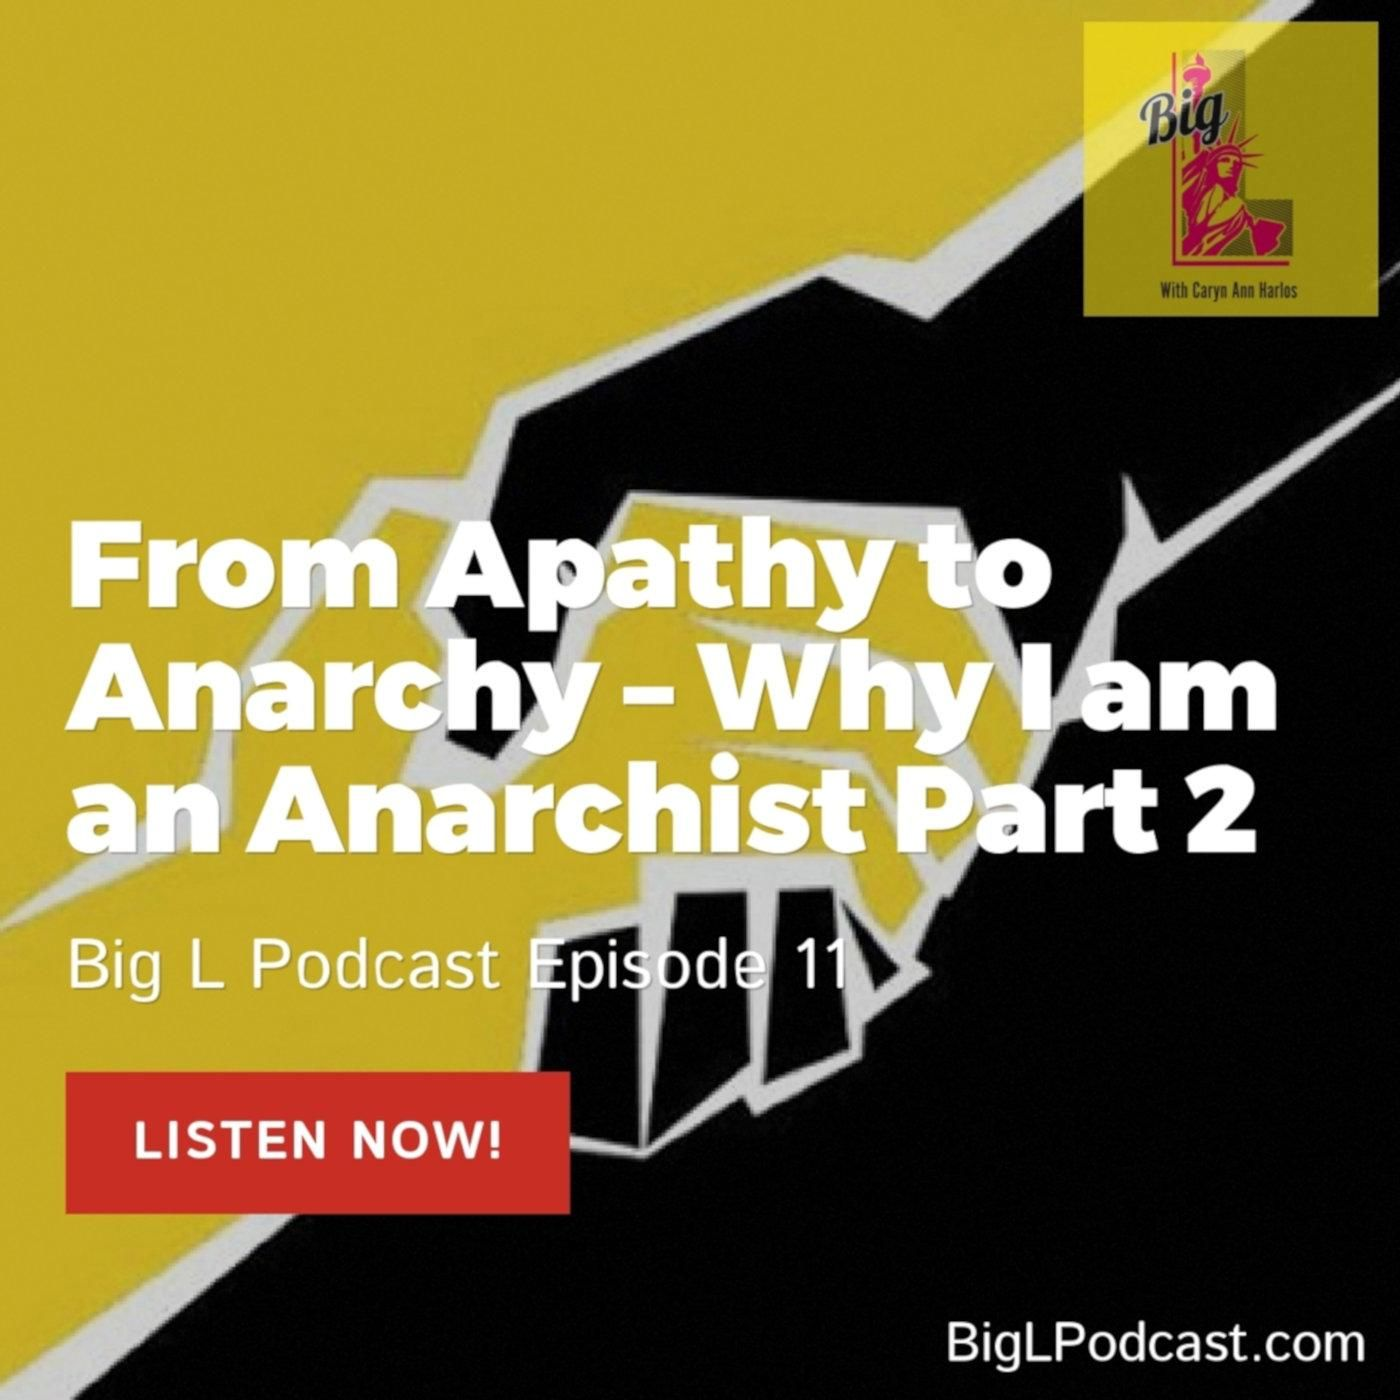 From Apathy to Anarchy – Why I am an Anarchist Part 2 - BL011